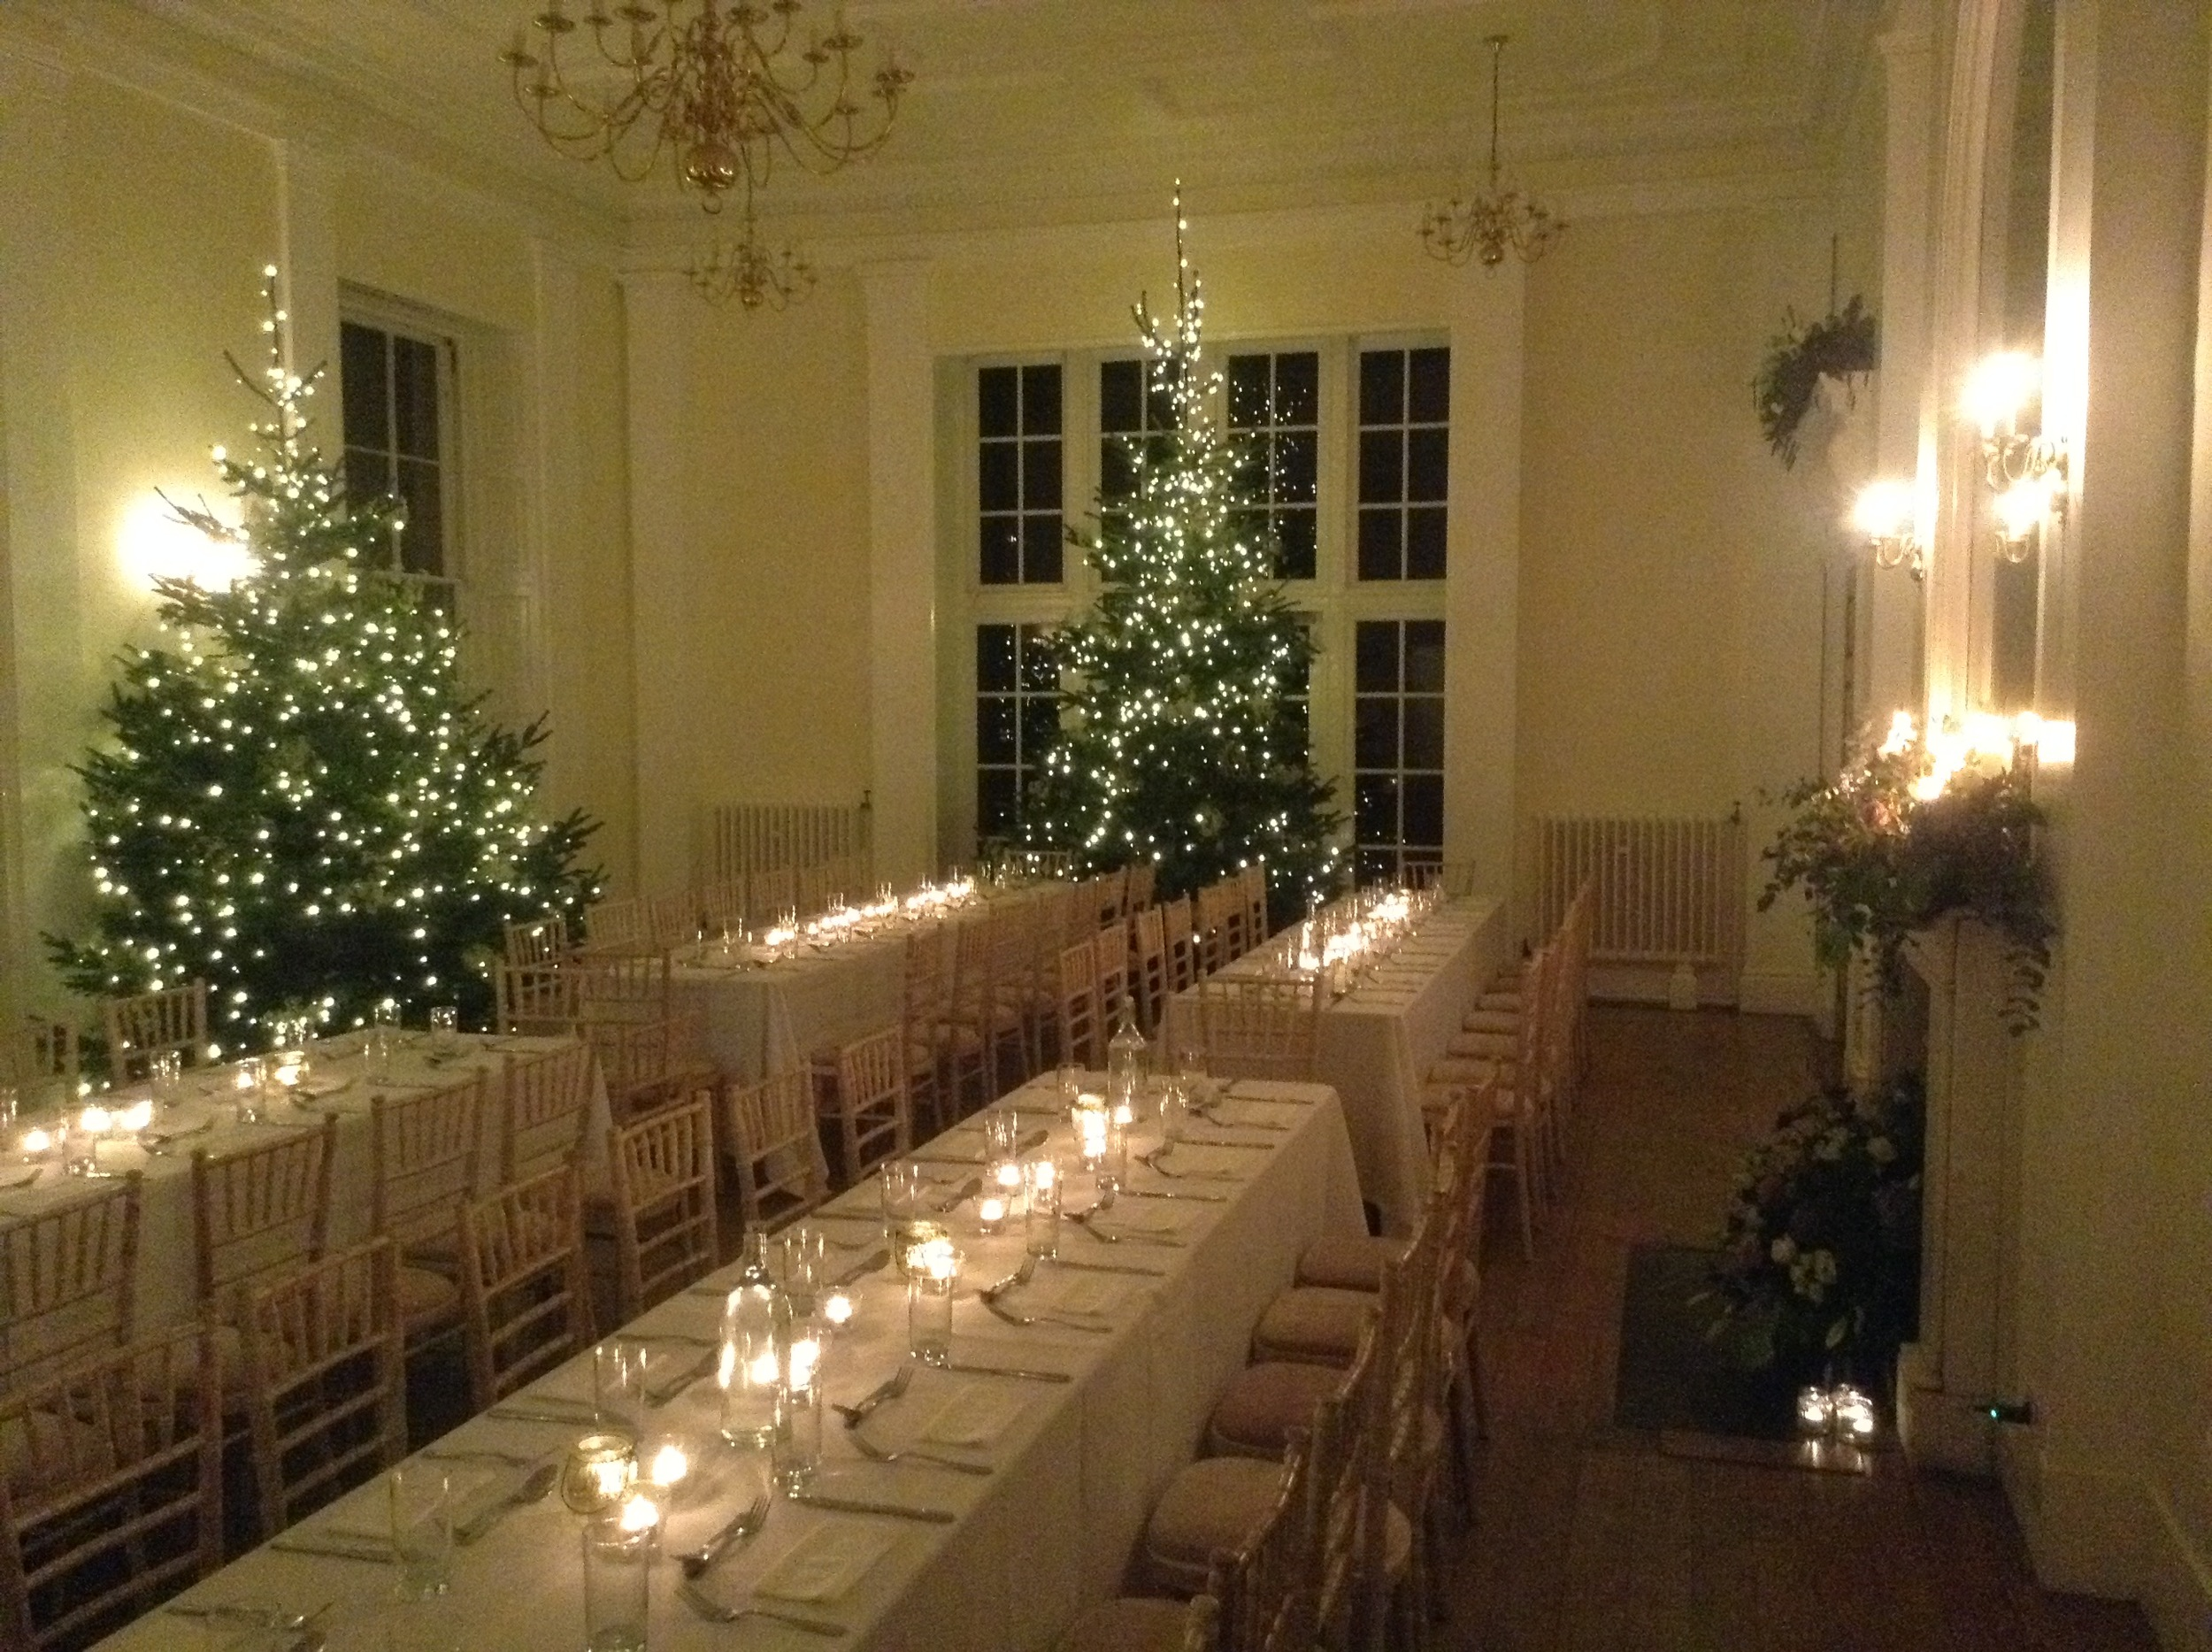 The christmas trees around the venue were 4 metres high and decorated with thousands of fairy lights and glitter gypsophila.